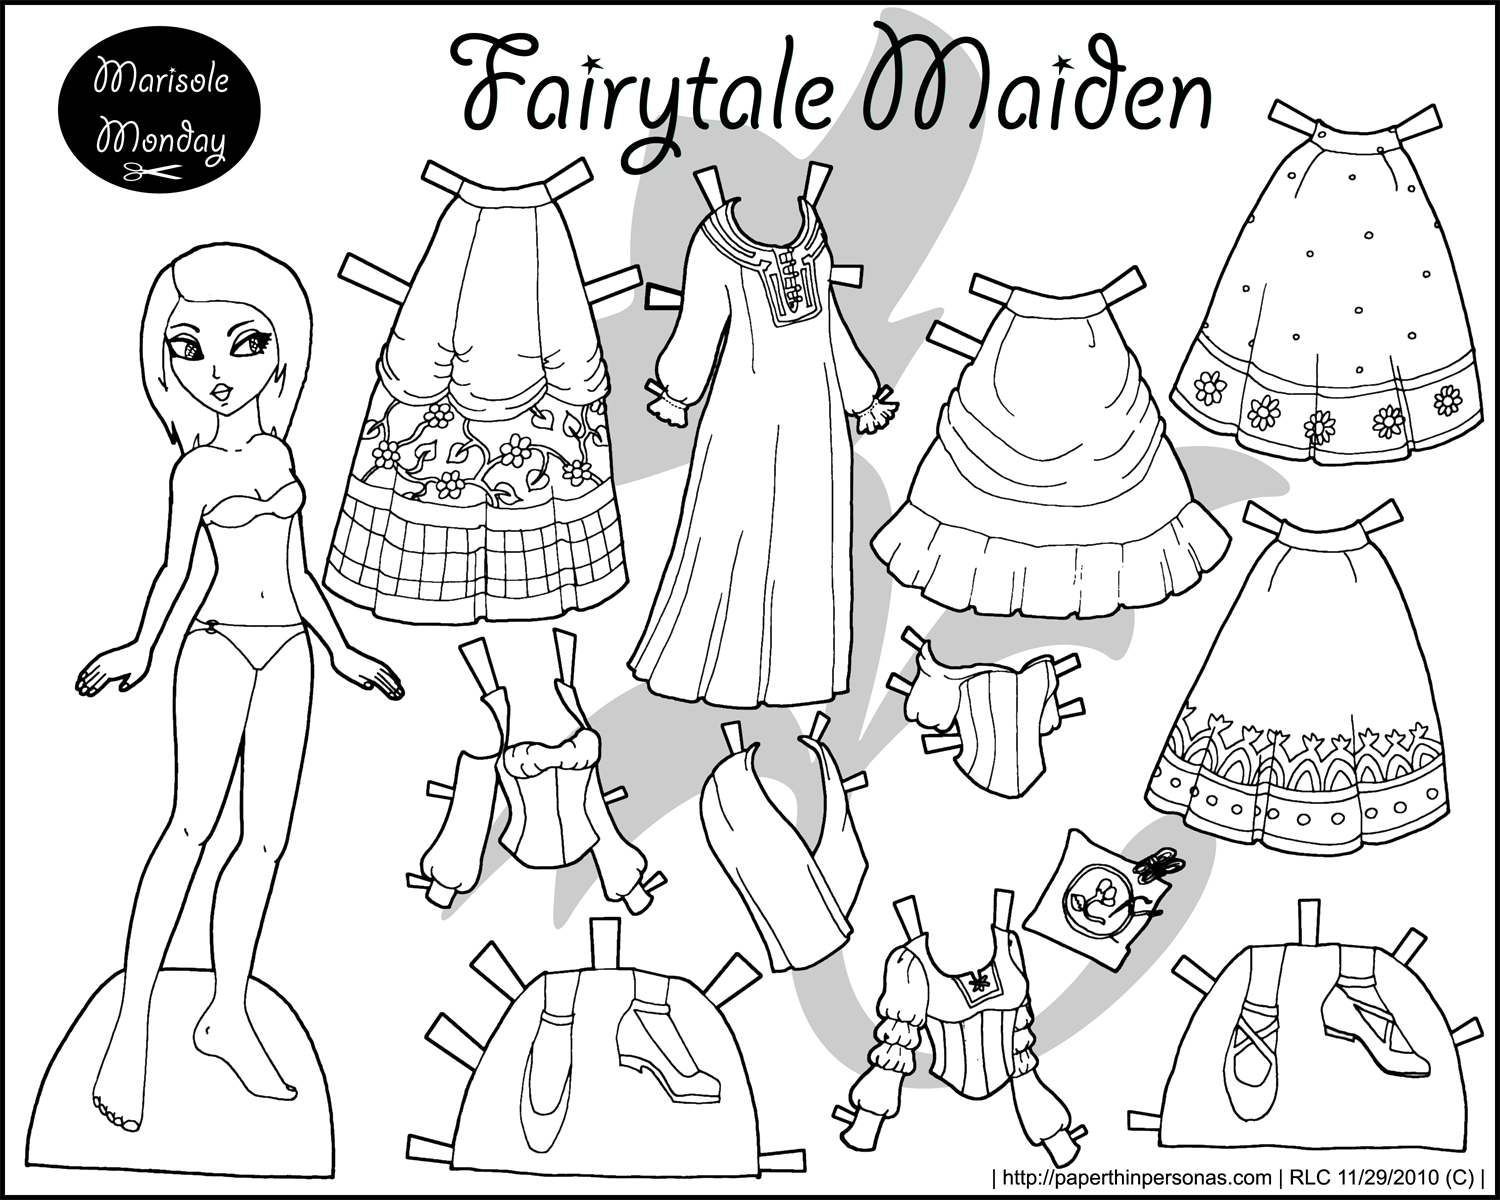 Uncategorized Paper Doll Coloring Page four princess coloring pages to print dress a fairy tale maiden black and white page up